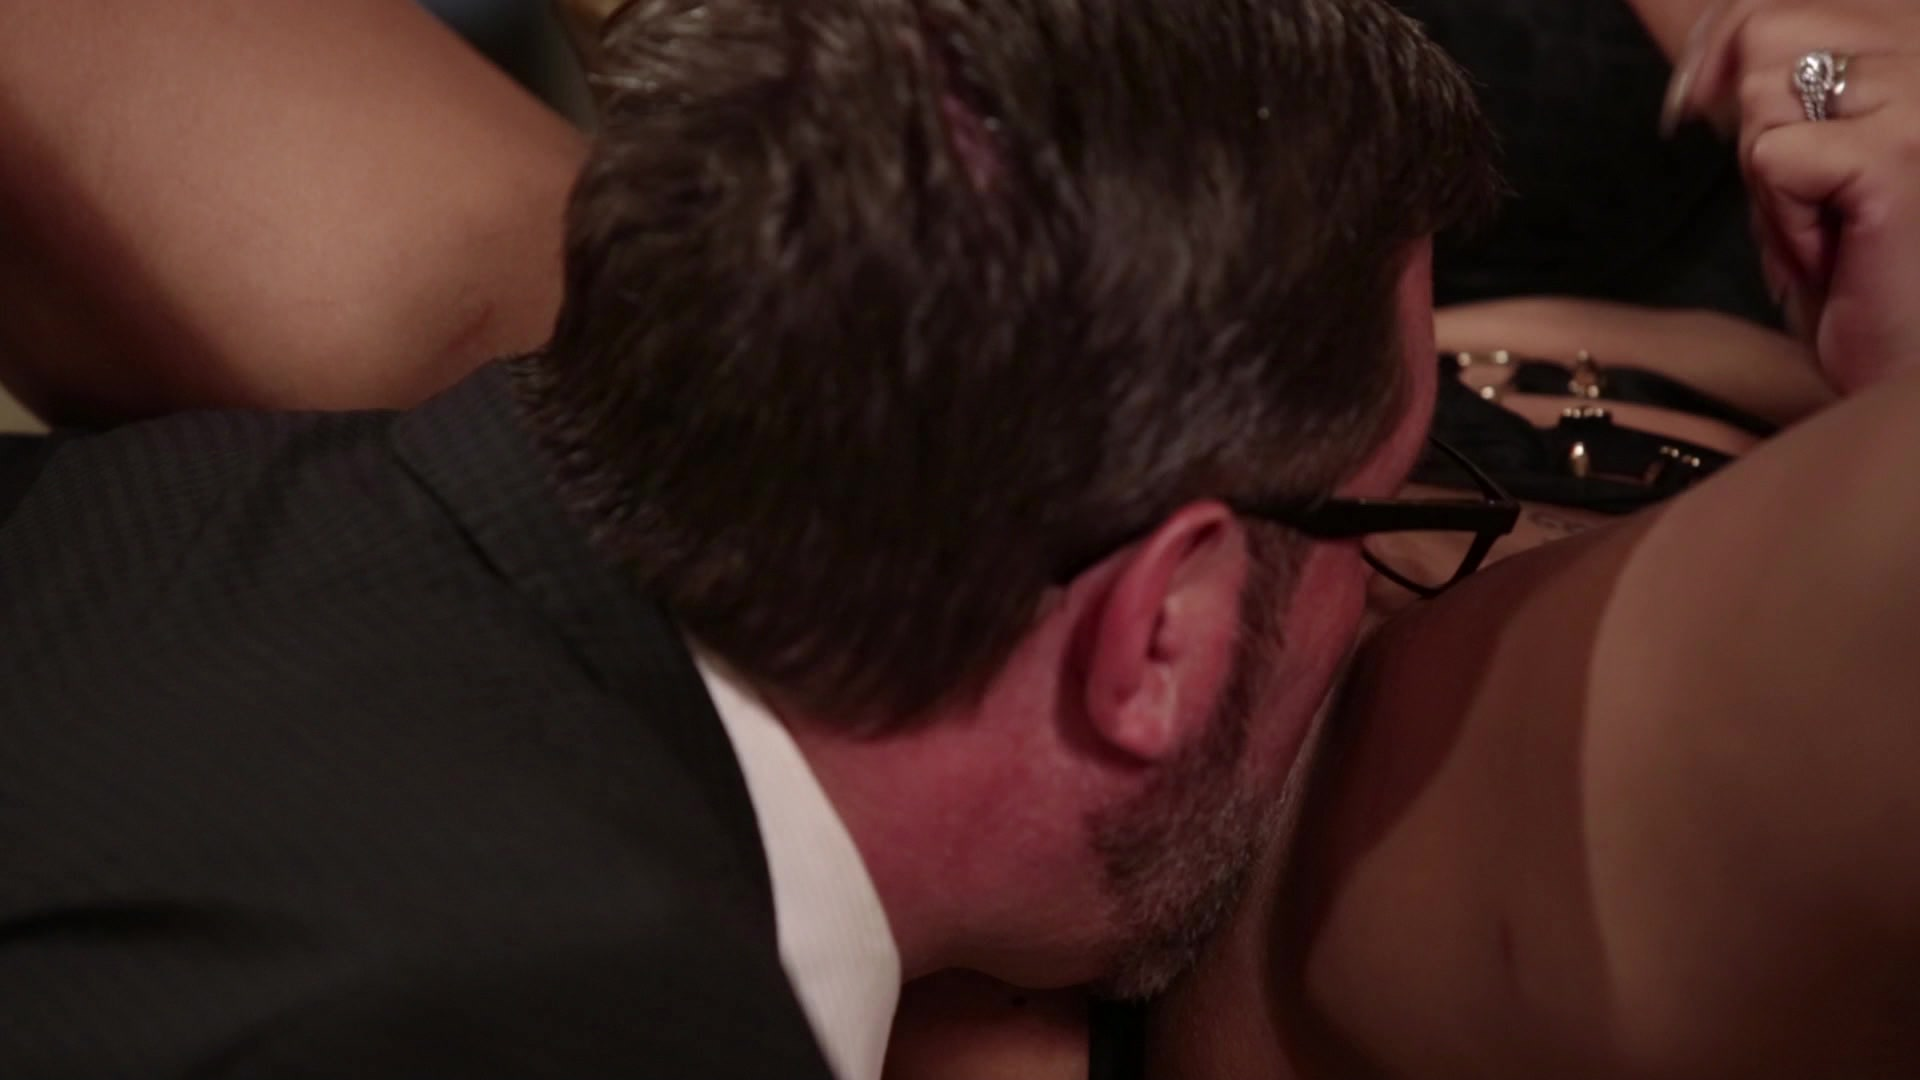 Scene with Jessica Drake - image 11 out of 20